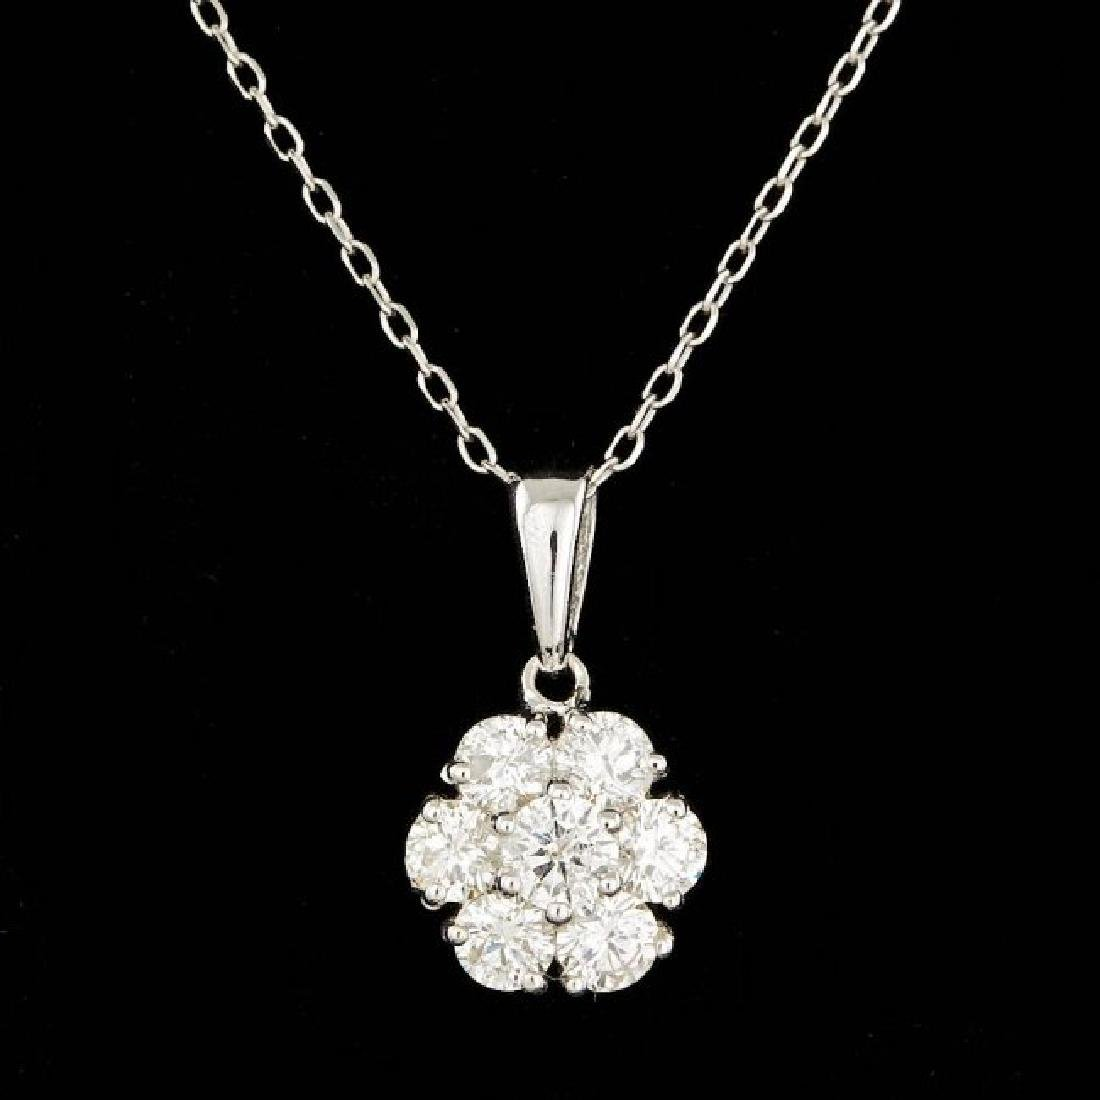 14k White Gold 0.90ct Diamond Pendant